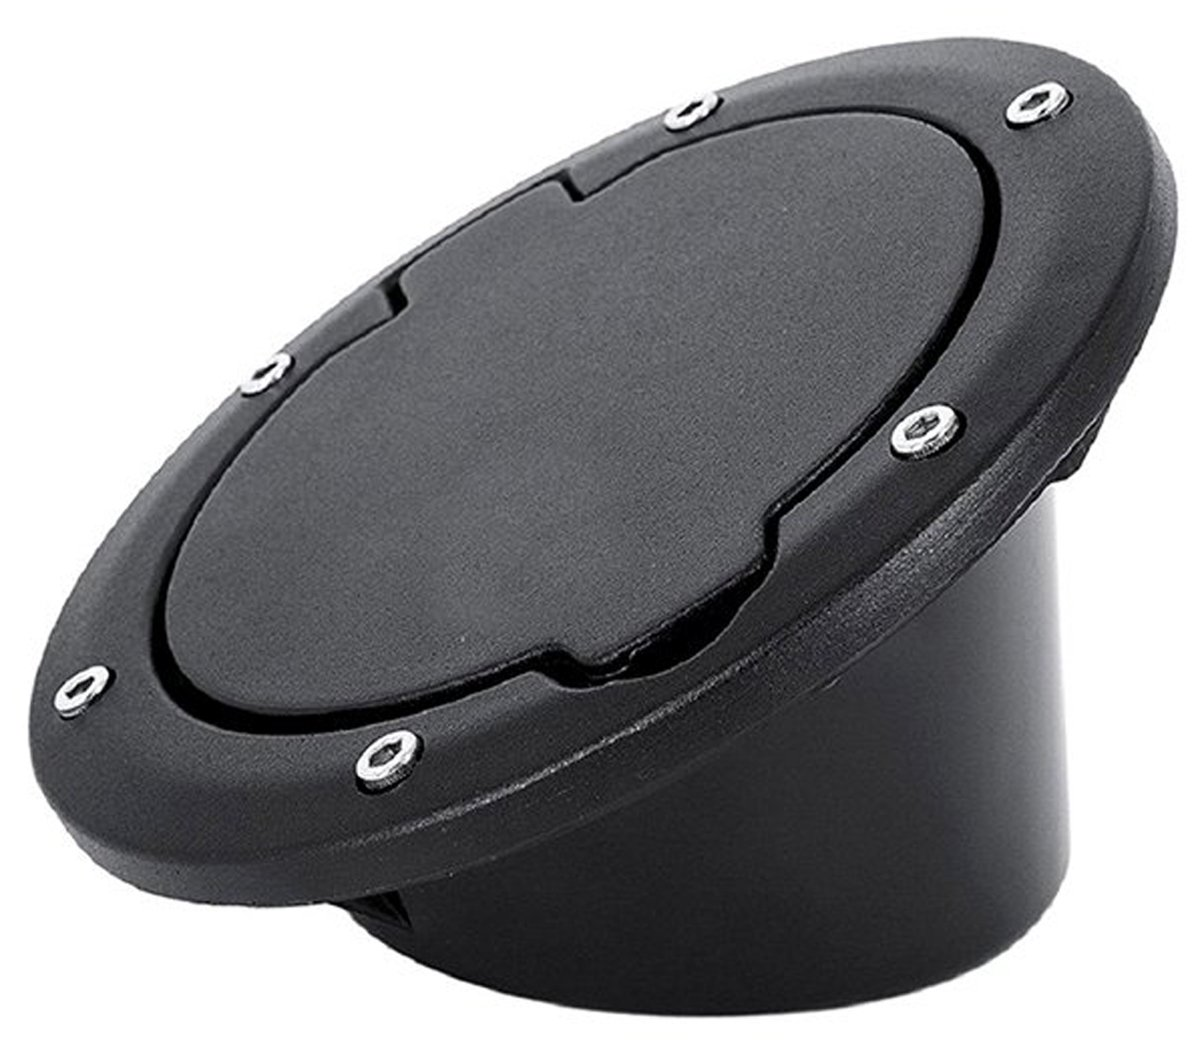 IPARTS Powder Coated Black Steel Gas Fuel Tank Cap Cover for Jeep Wrangler JK JKU Unlimited Rubicon Sahara X Off Road Sport Exterior Accessories Parts 2007-2017 (Smile224)